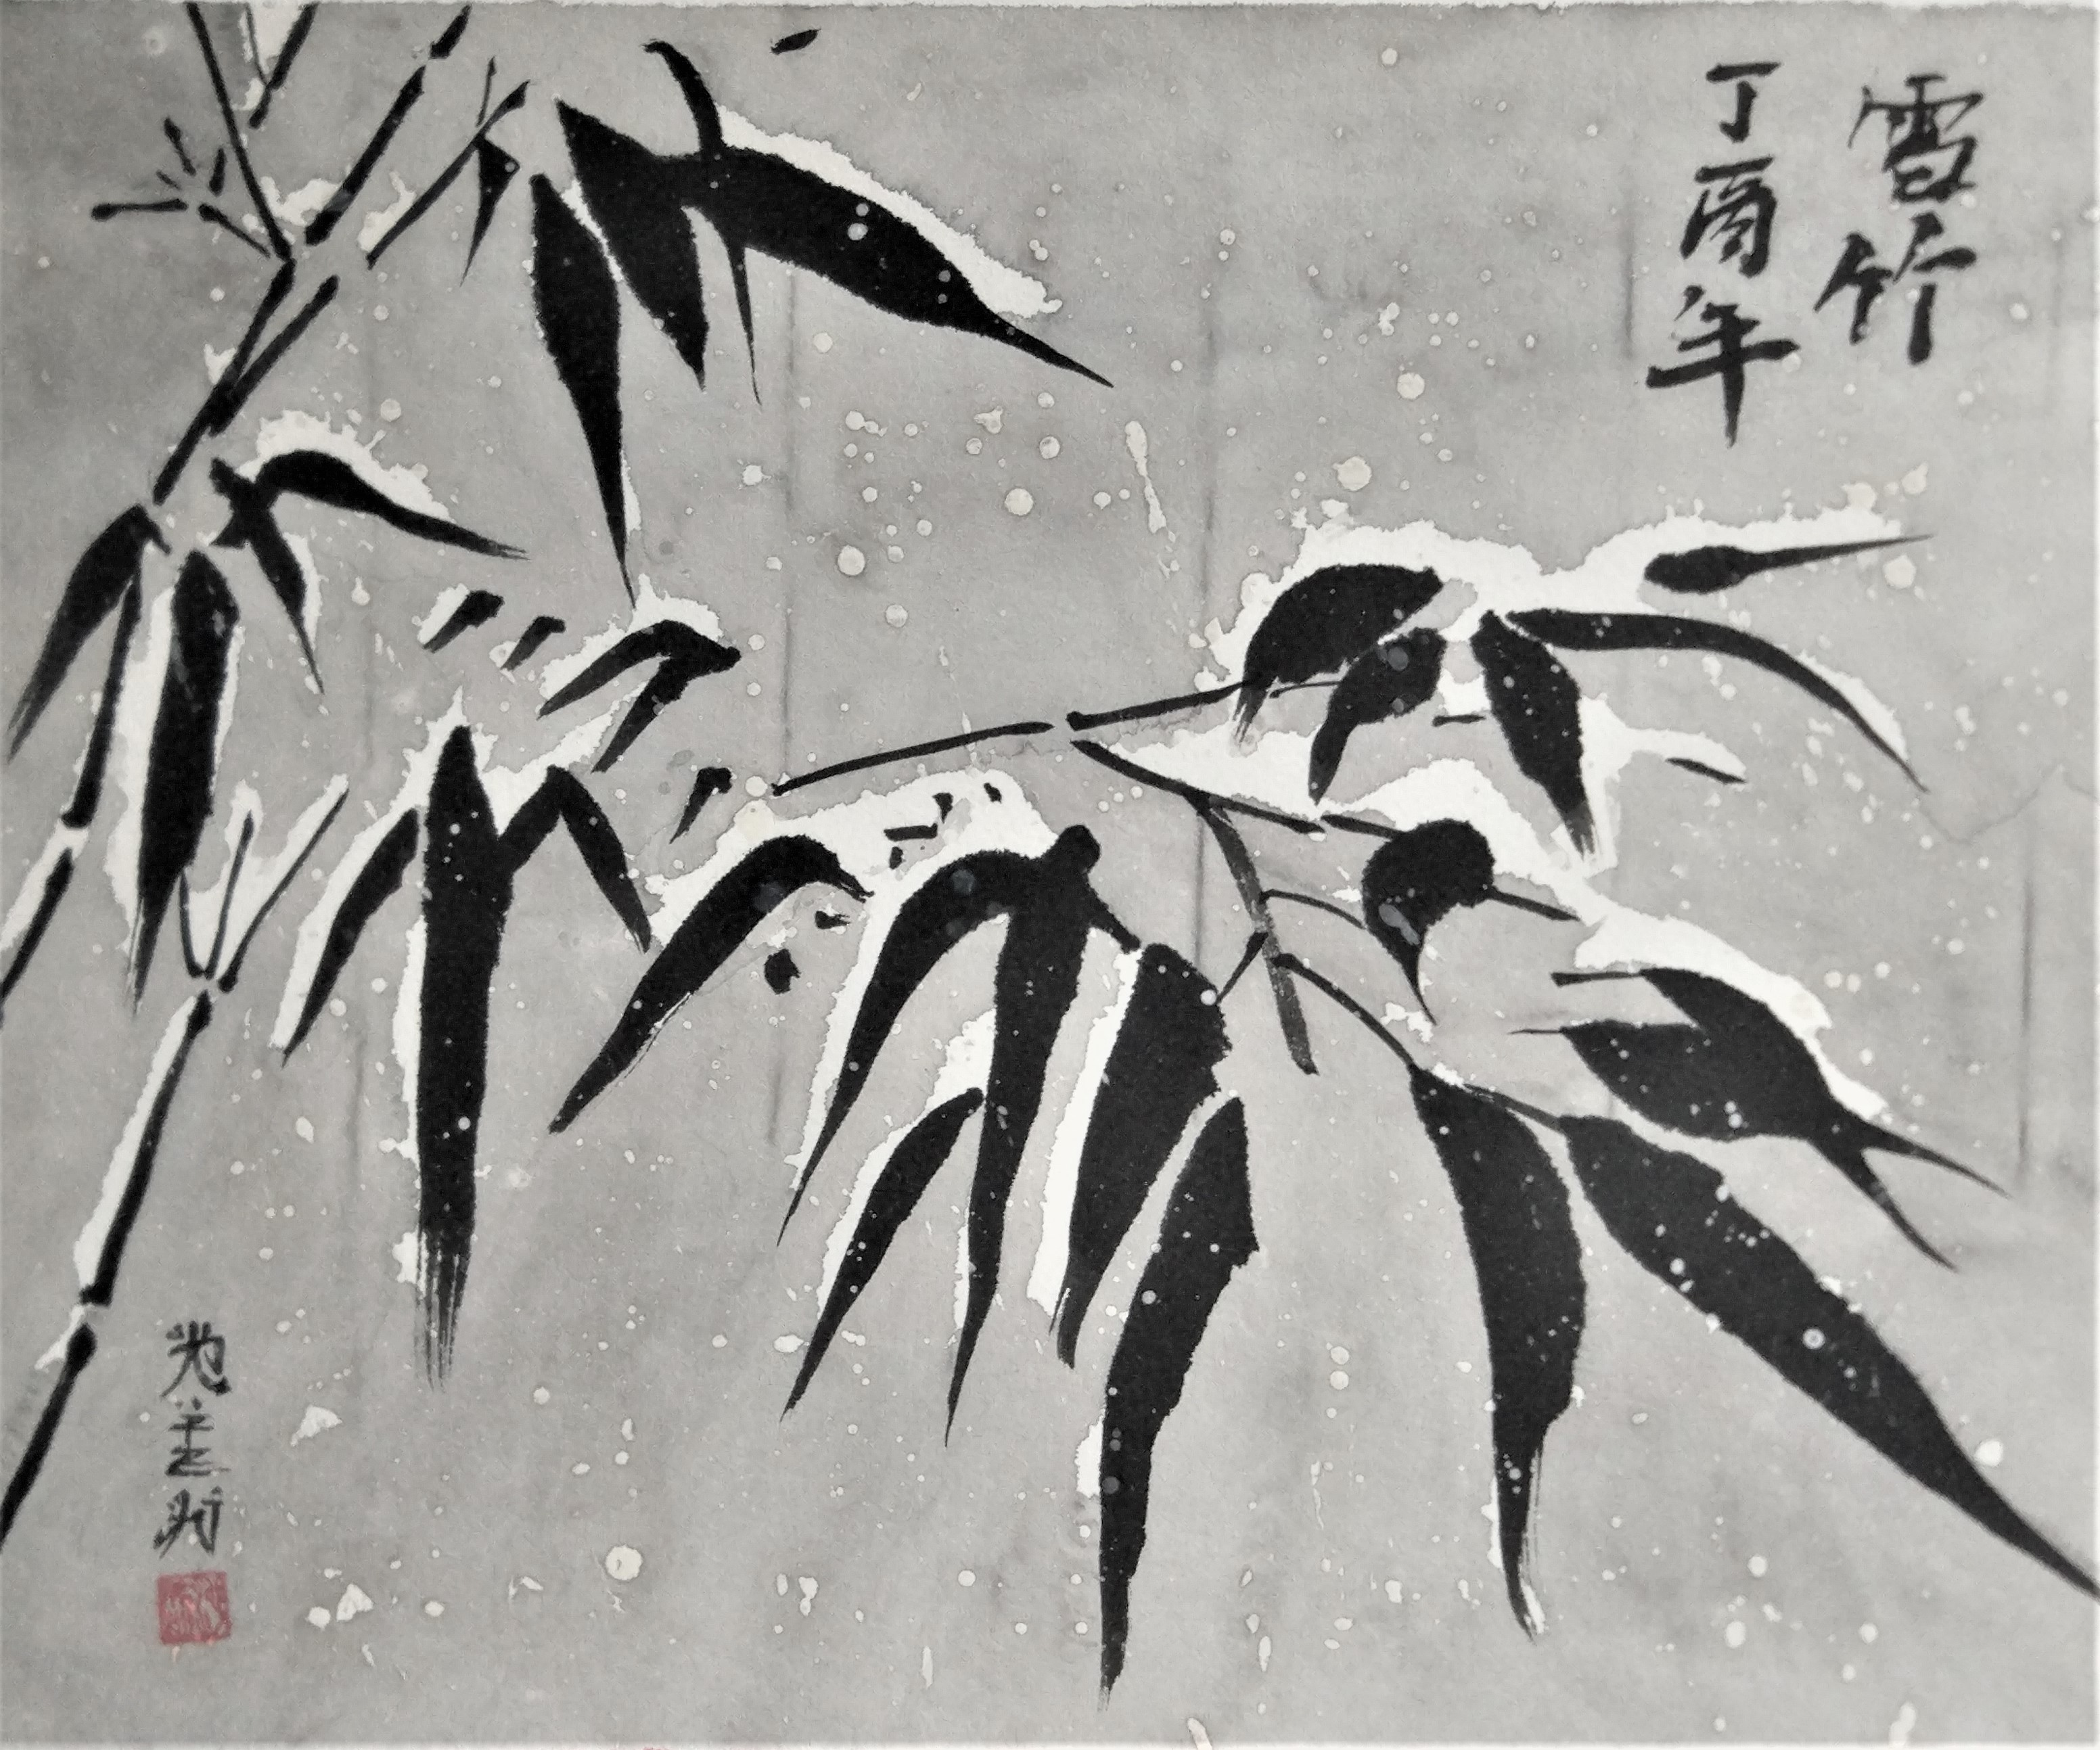 Bamboo in winter